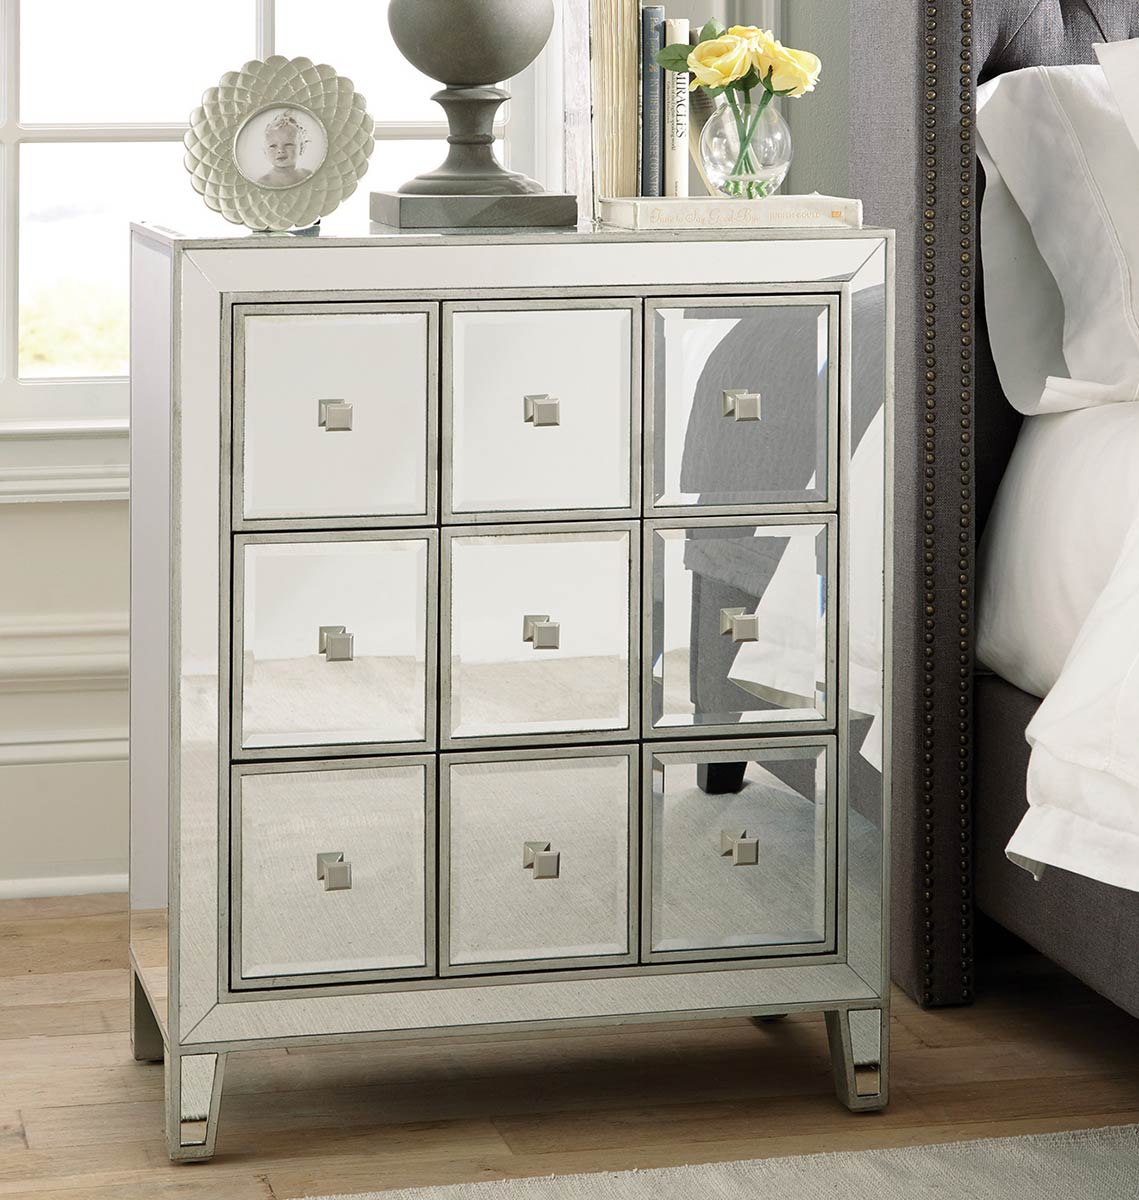 Coaster 950745 Accent Cabinet - Clear Mirror/Silver